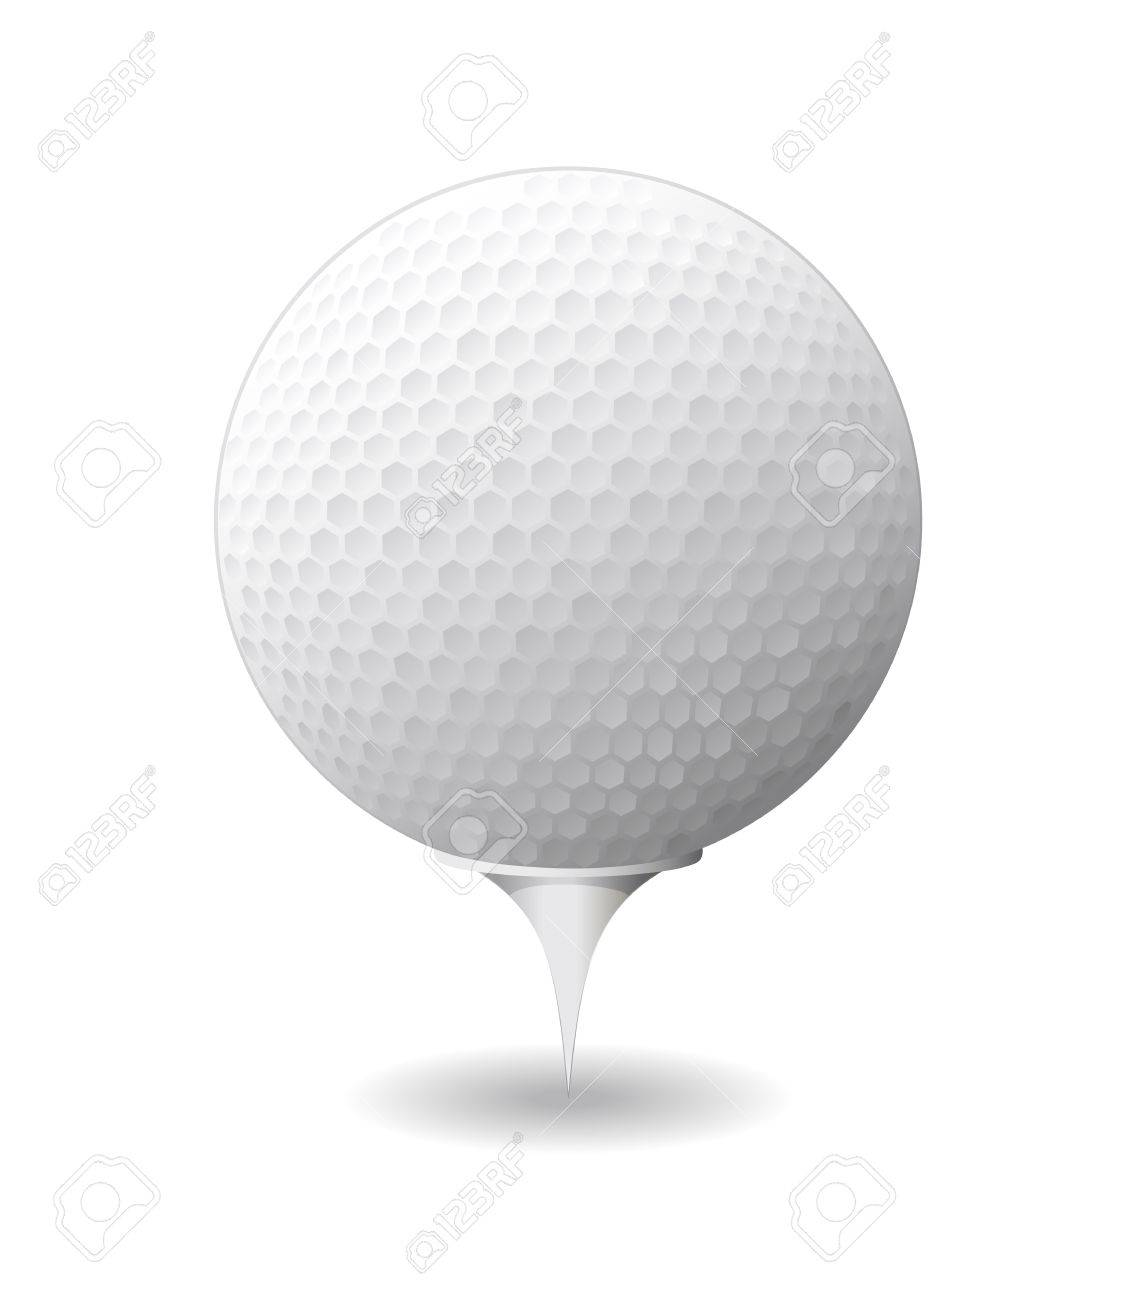 Golf ball is shown in the image Stock Vector - 9655798